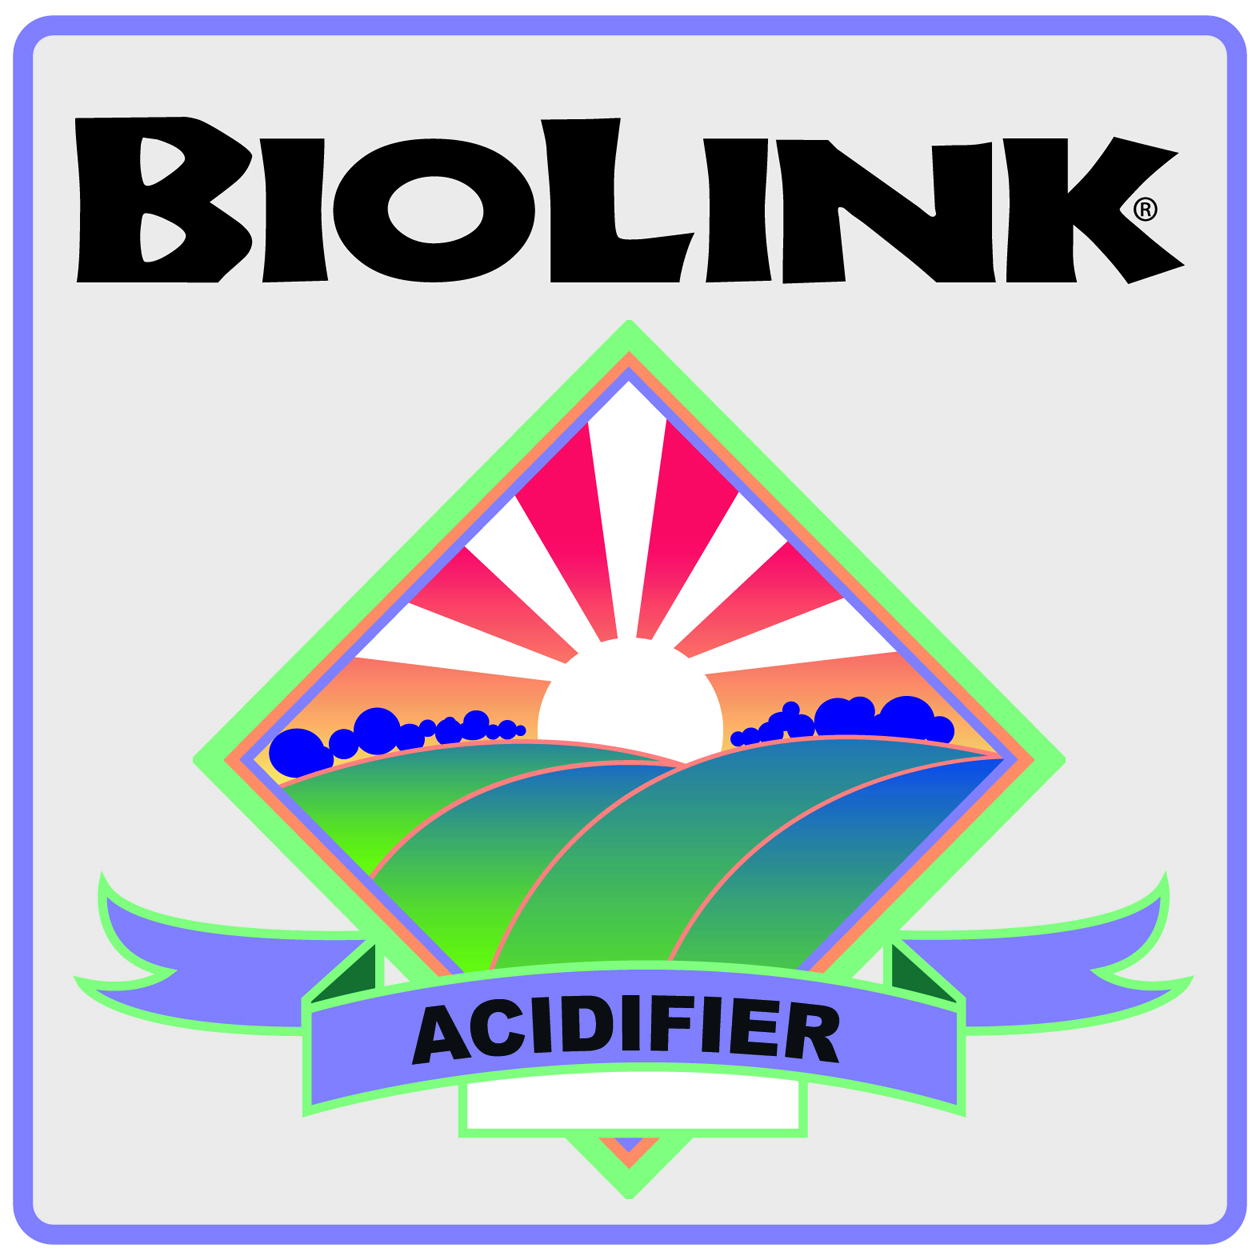 BIOLINK® — ACIDIFIER